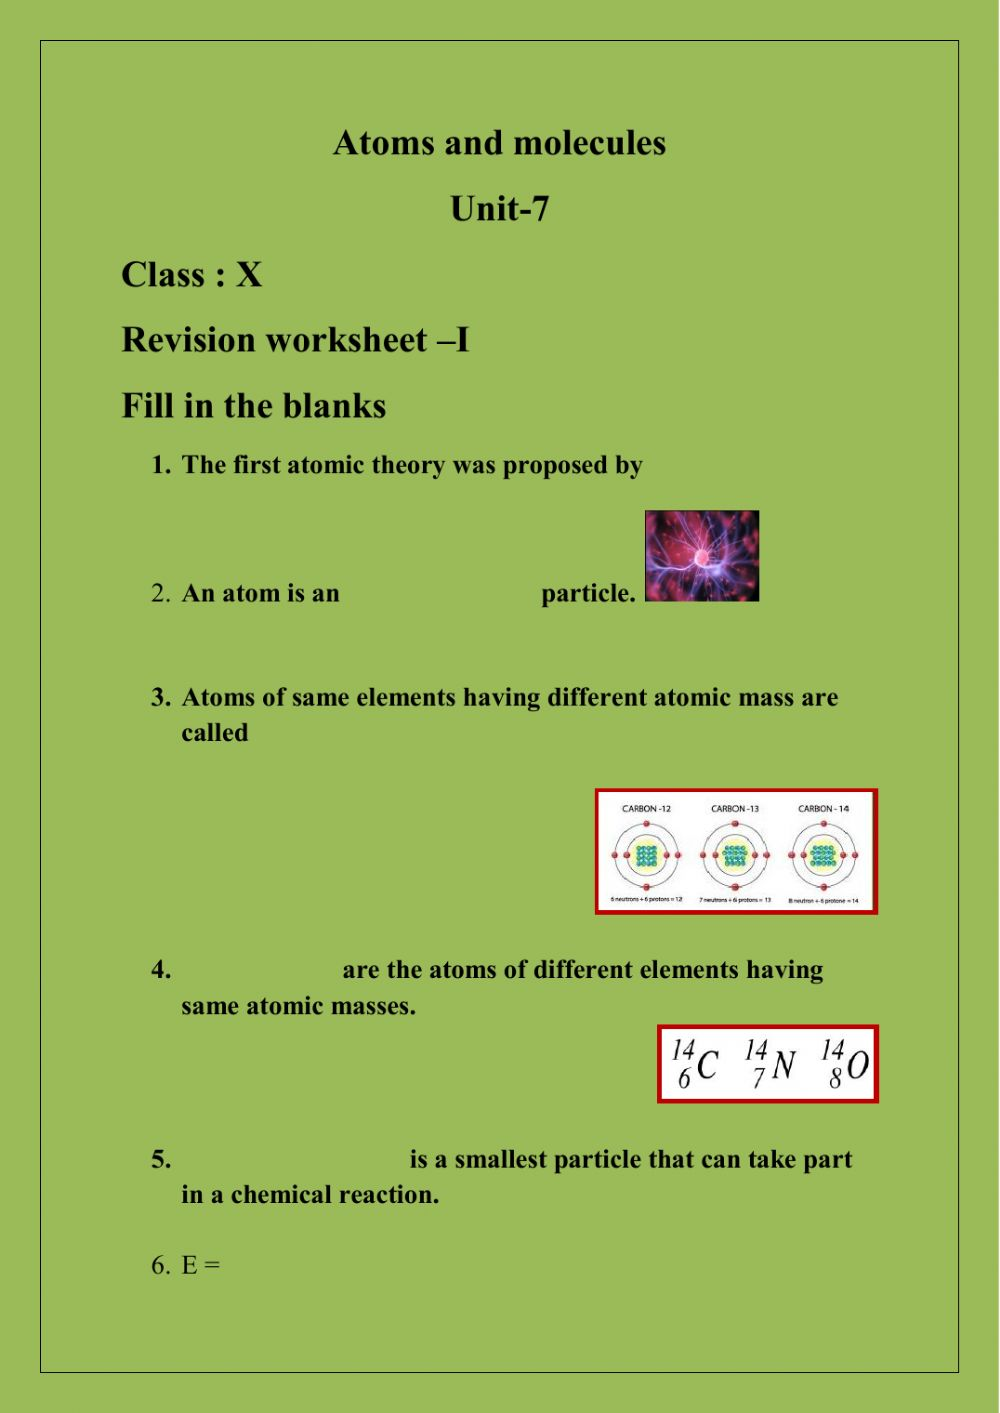 hight resolution of Atoms and molecules worksheet